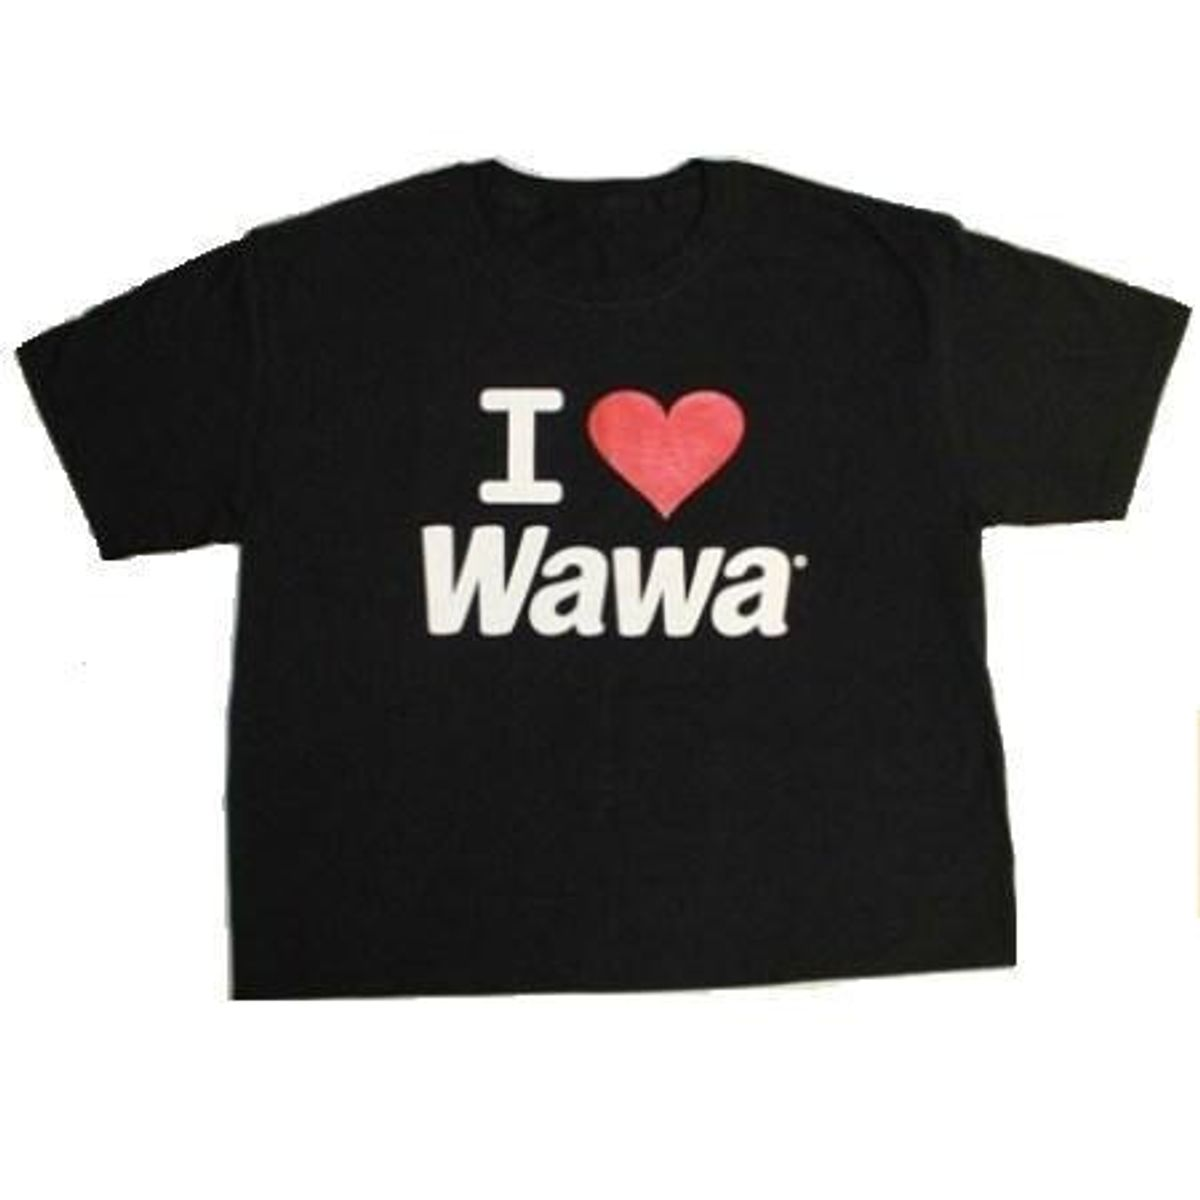 A Love Letter to Wawa